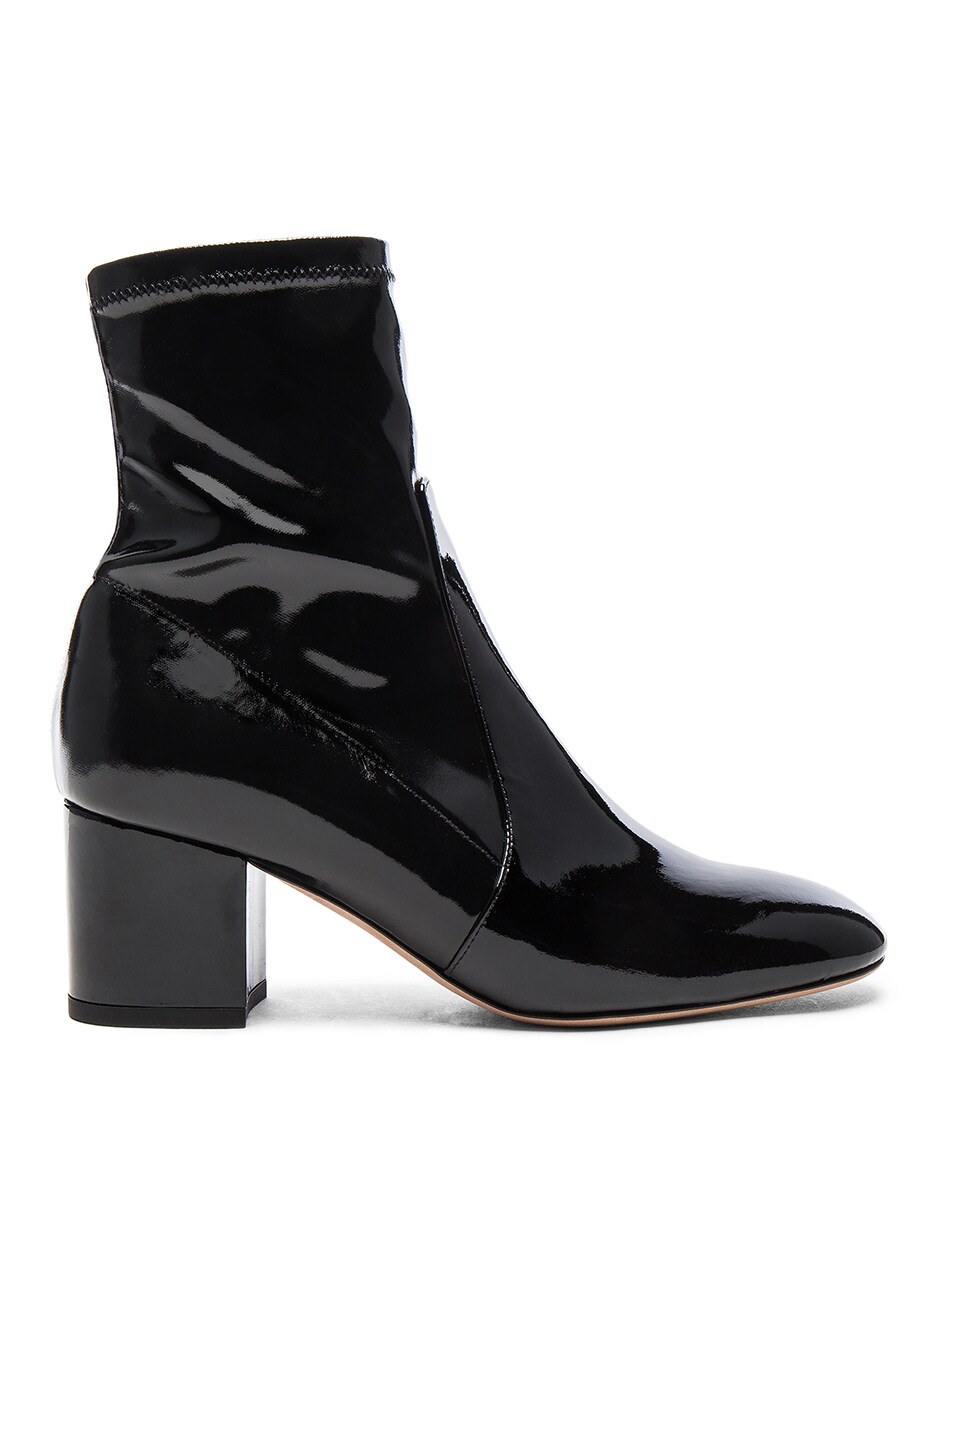 Image 1 of Valentino Patent Leather Booties in Nero